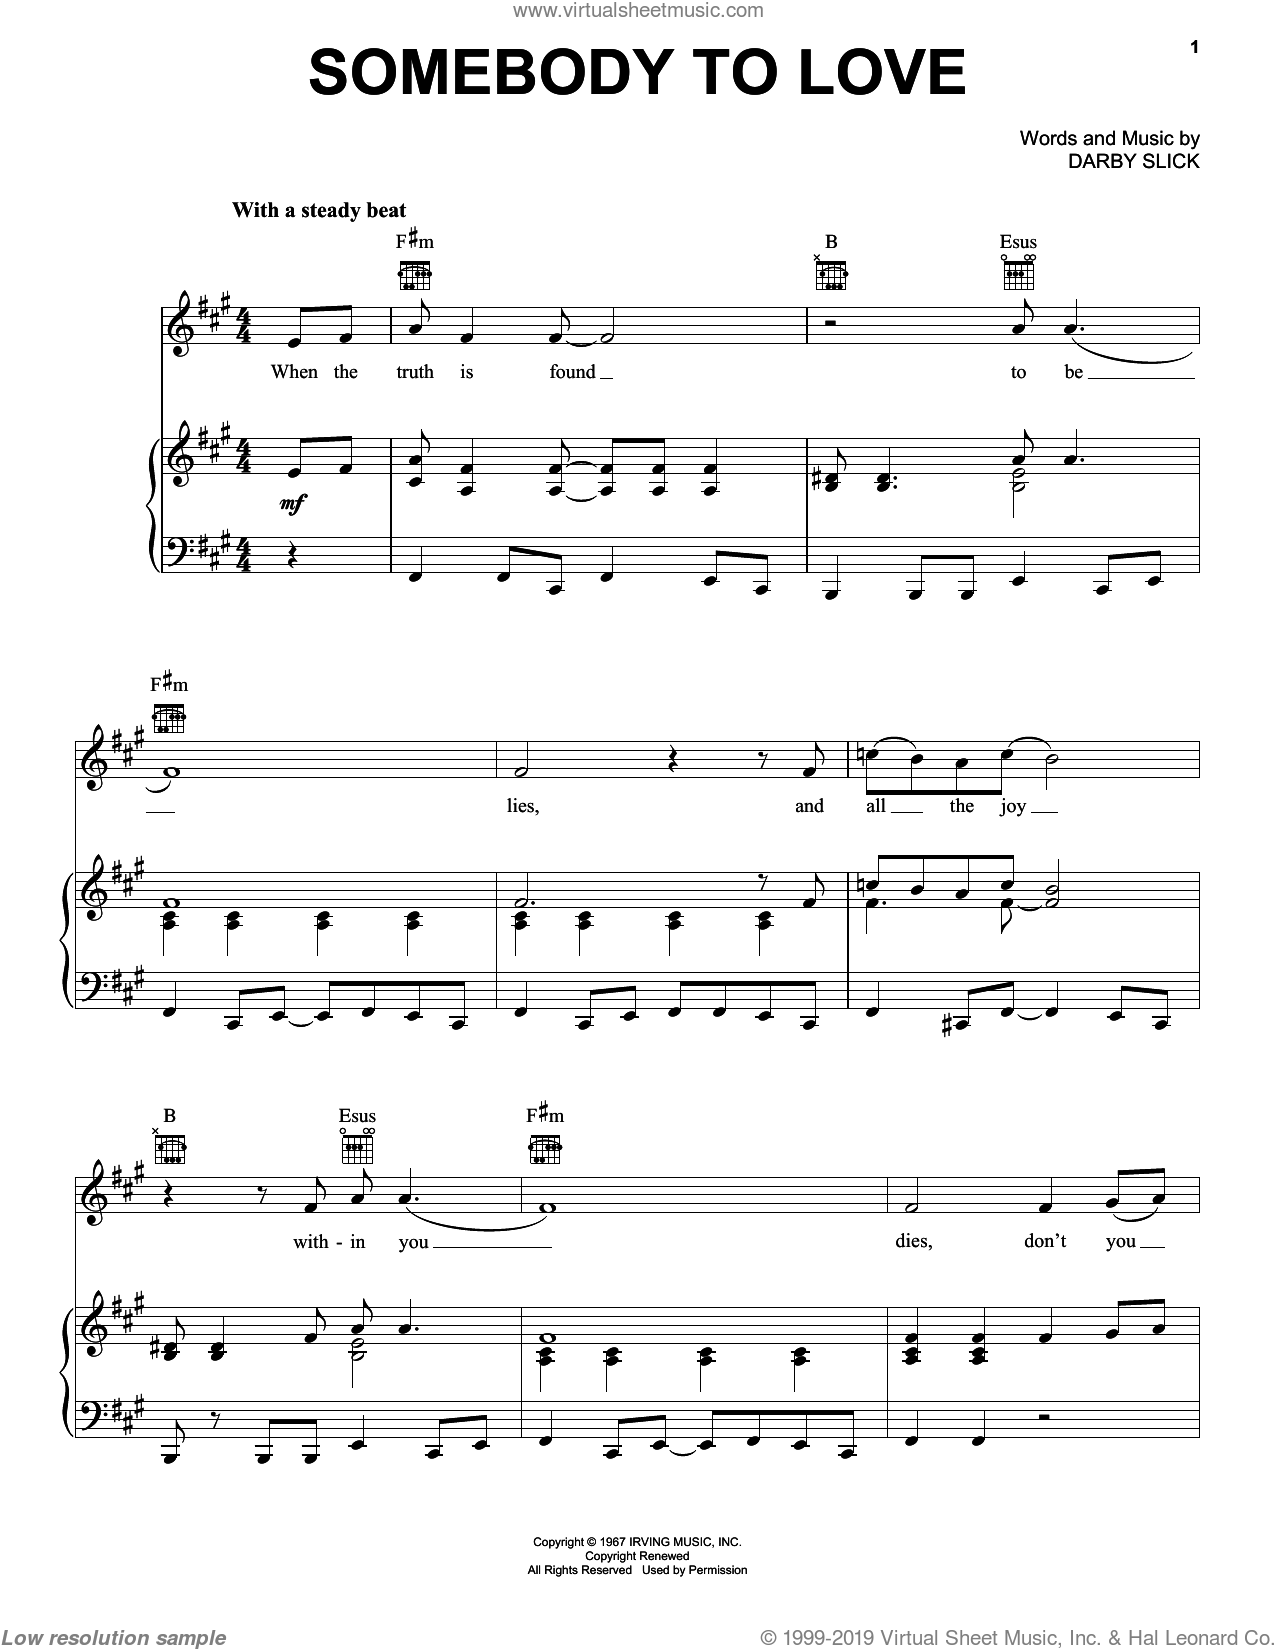 Somebody To Love sheet music for voice, piano or guitar by Darby Slick